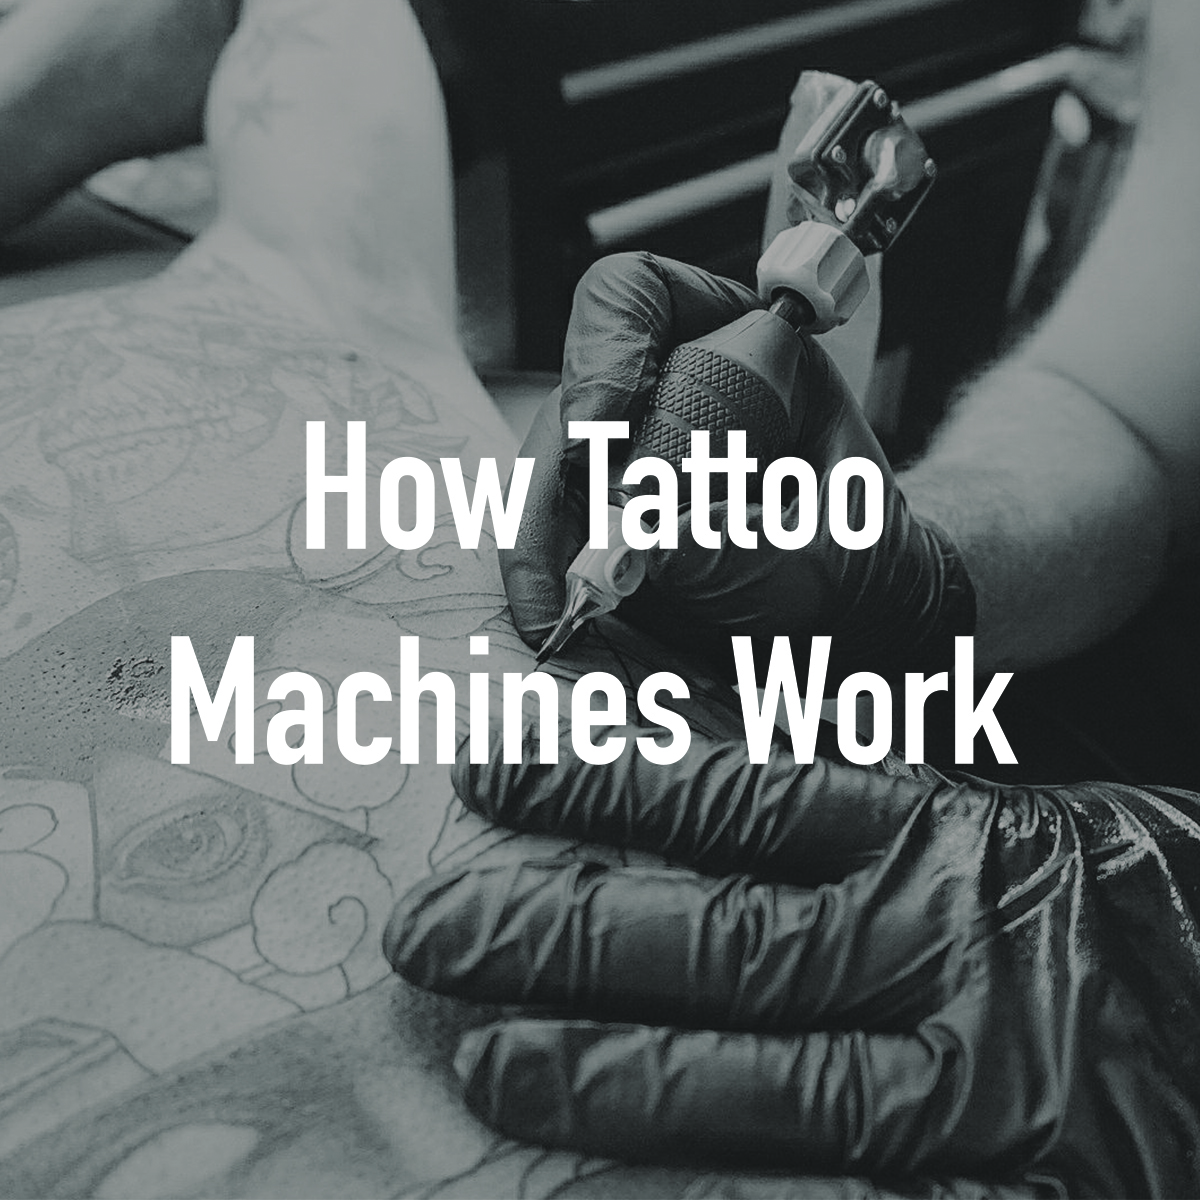 how tattoo machiens work 2.jpg